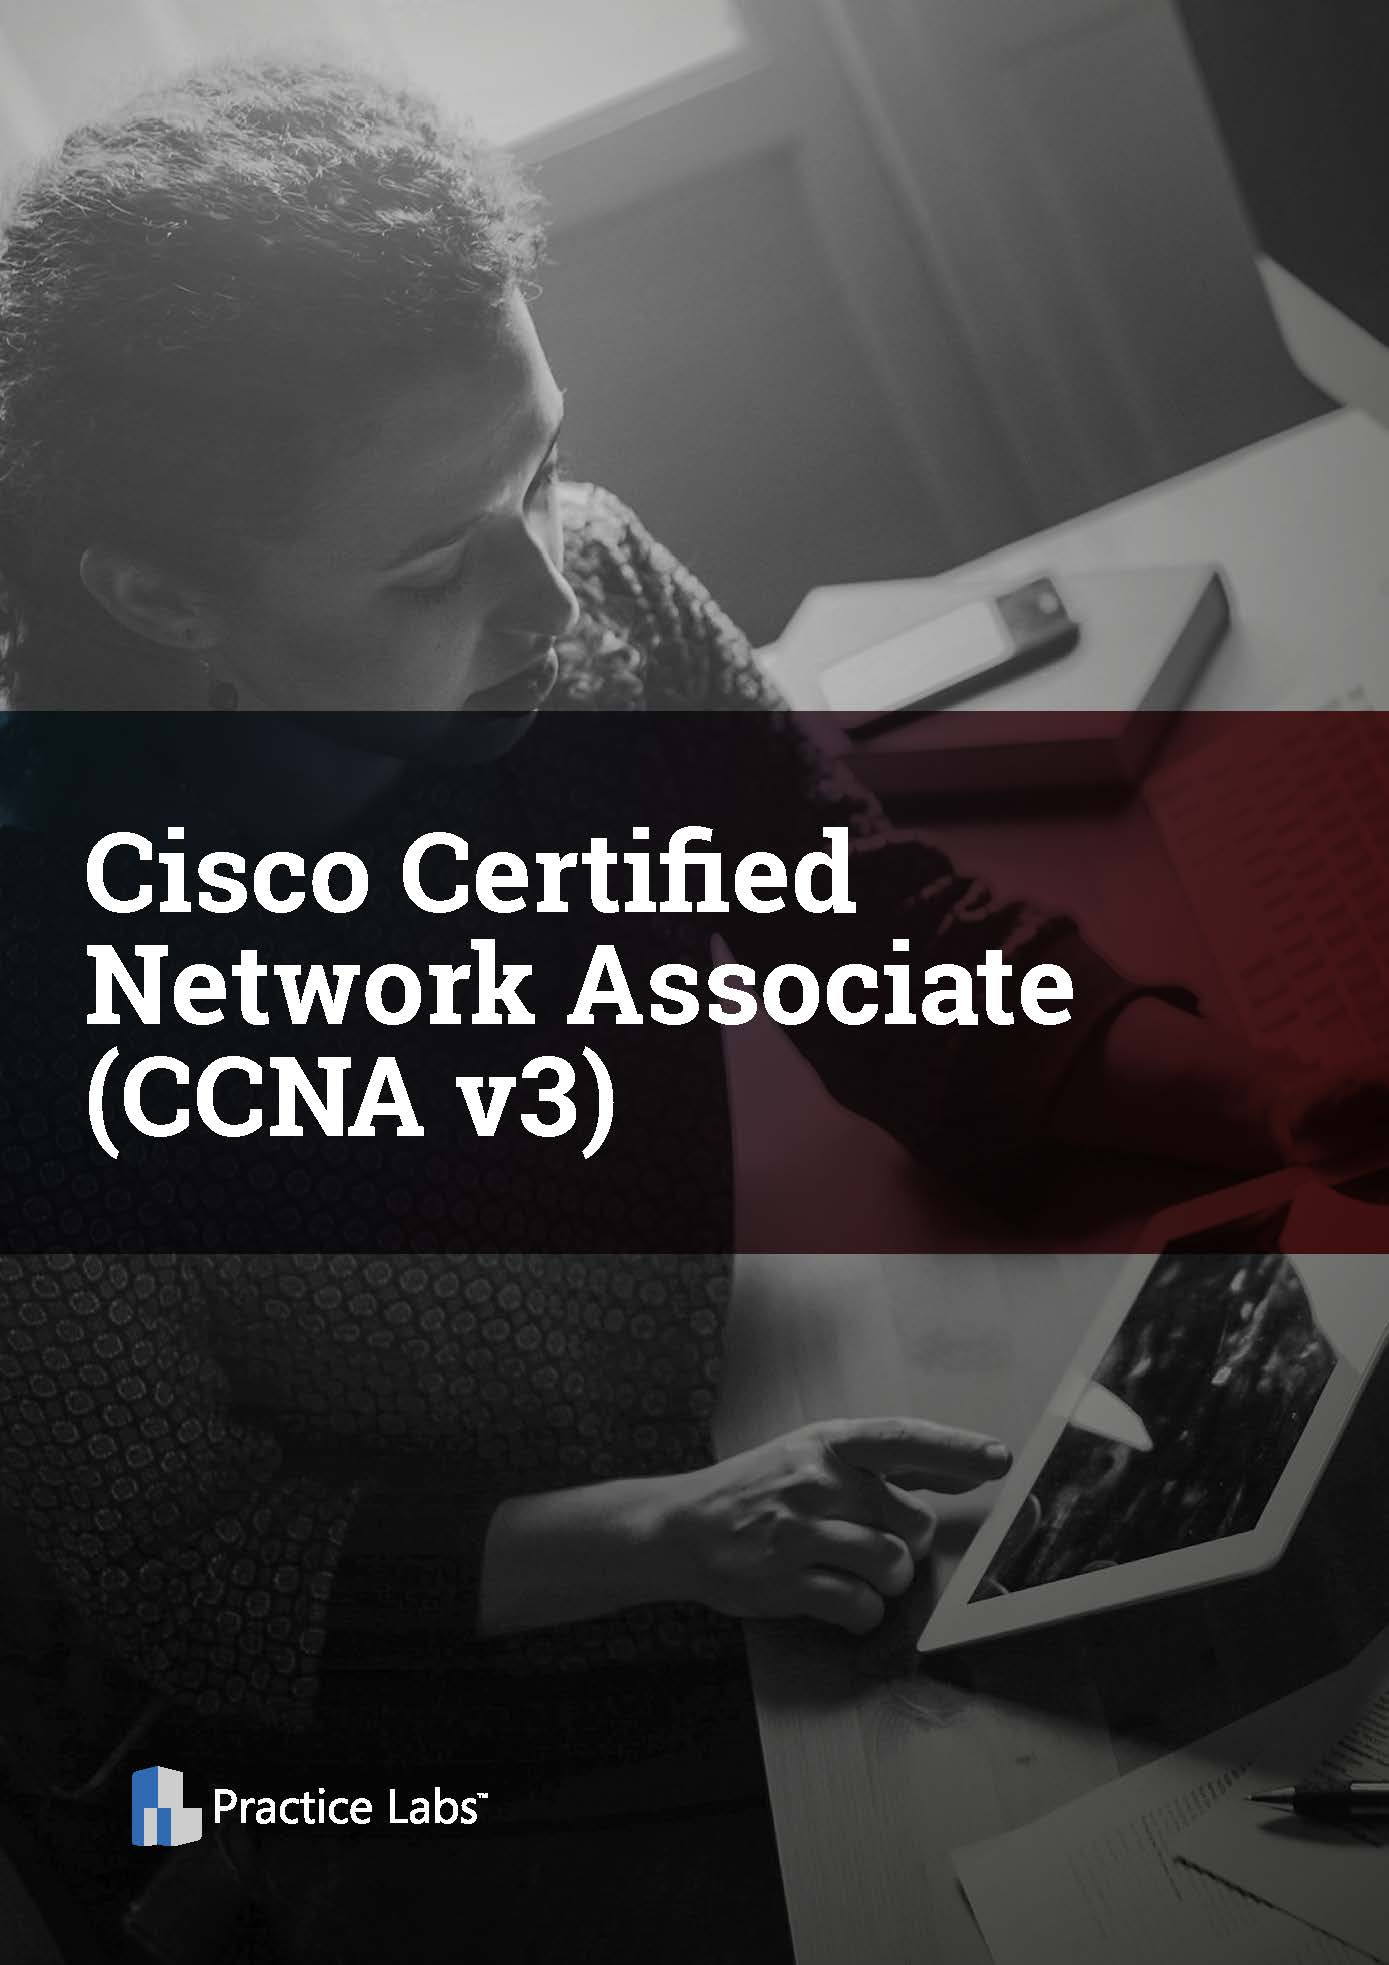 Cisco Certified Network Associate (CCNA v3)